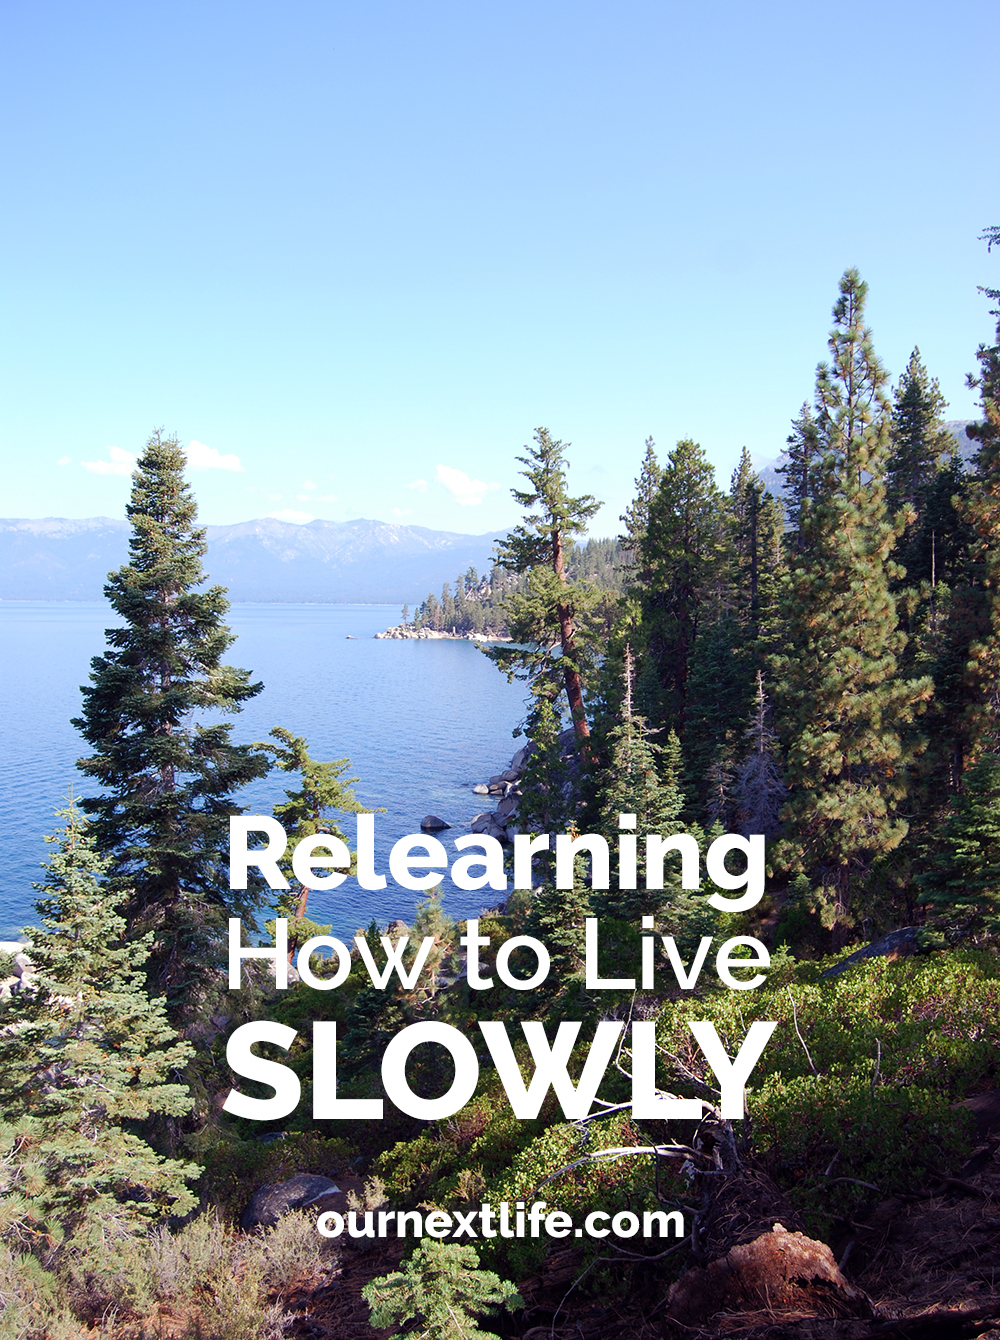 Relearning how to live slowly in early retirement and financial independence // Our Next Life // ournextlife.com